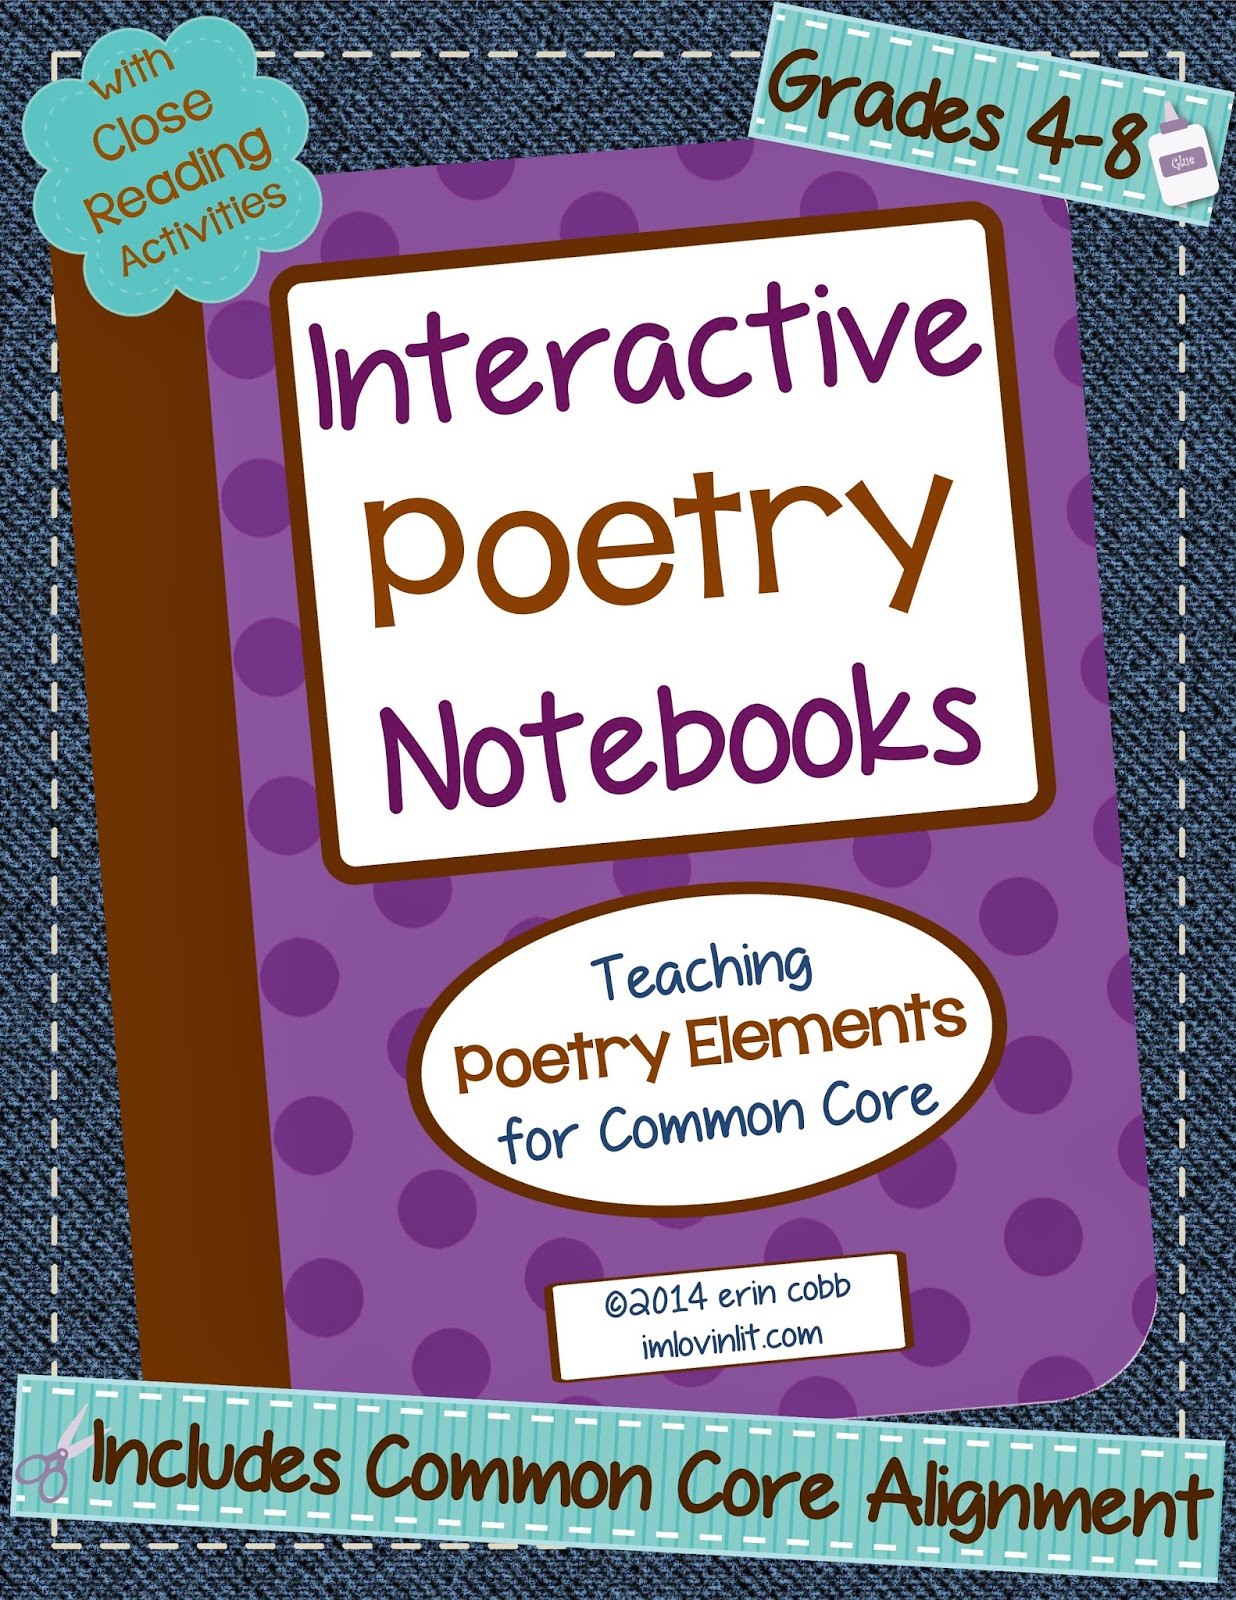 Quick Peek at My Week ~ Poetry Notebooks & Middle School Conference!